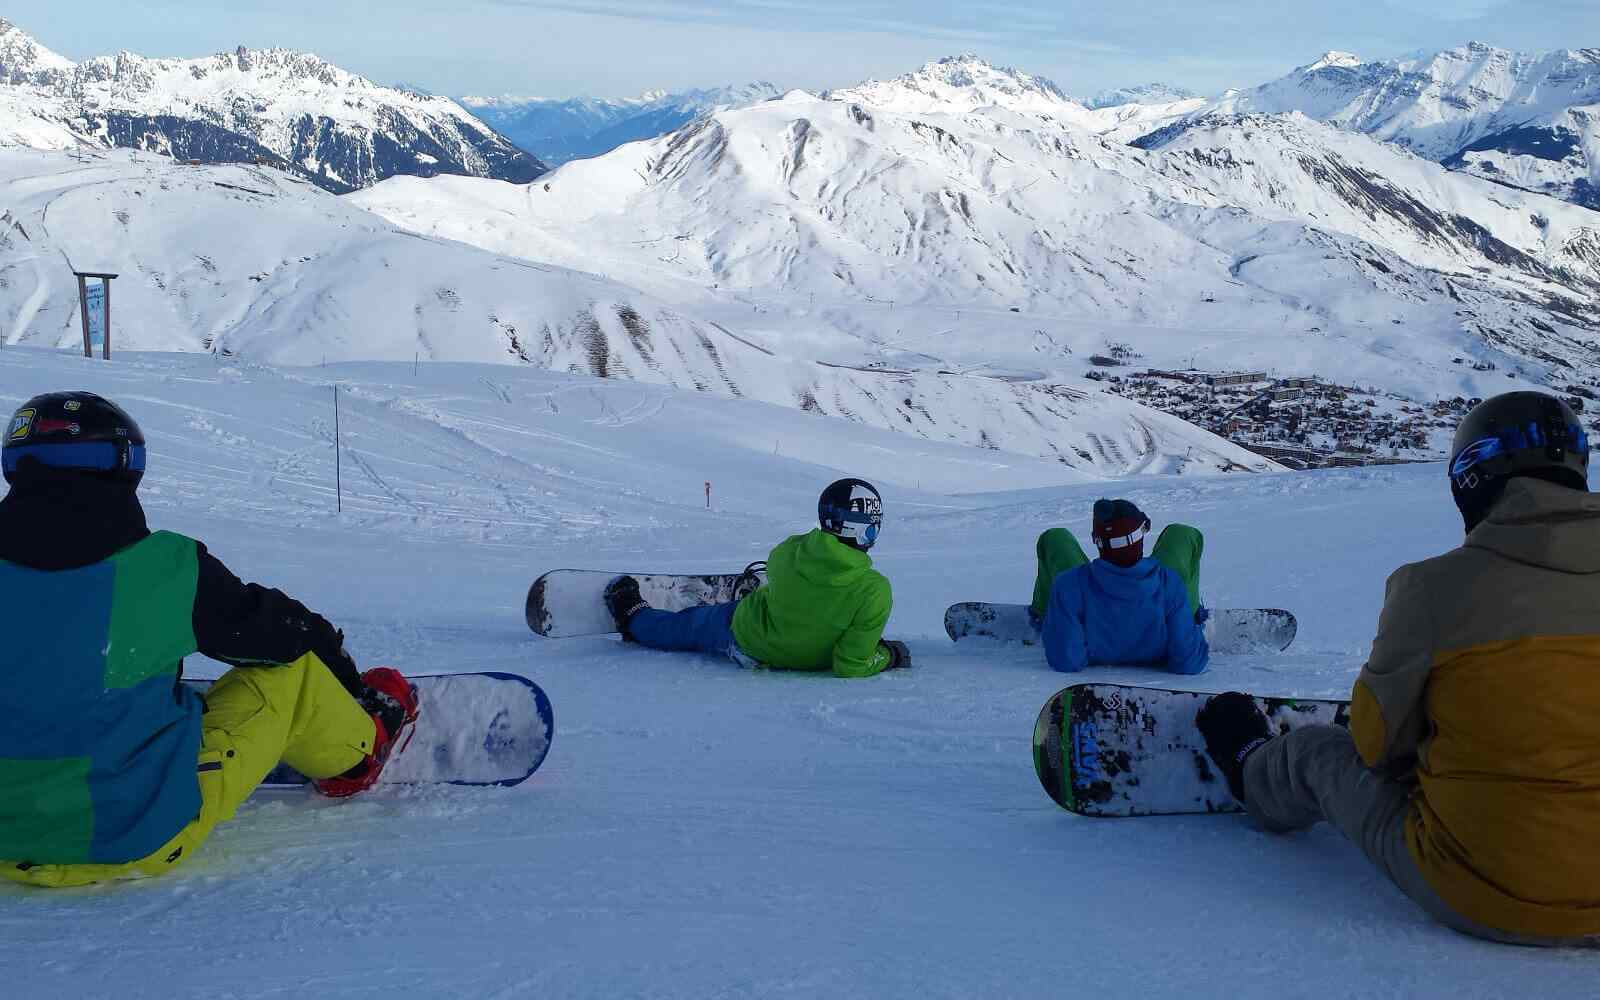 Group of snowboarders sitting down looking at mountains